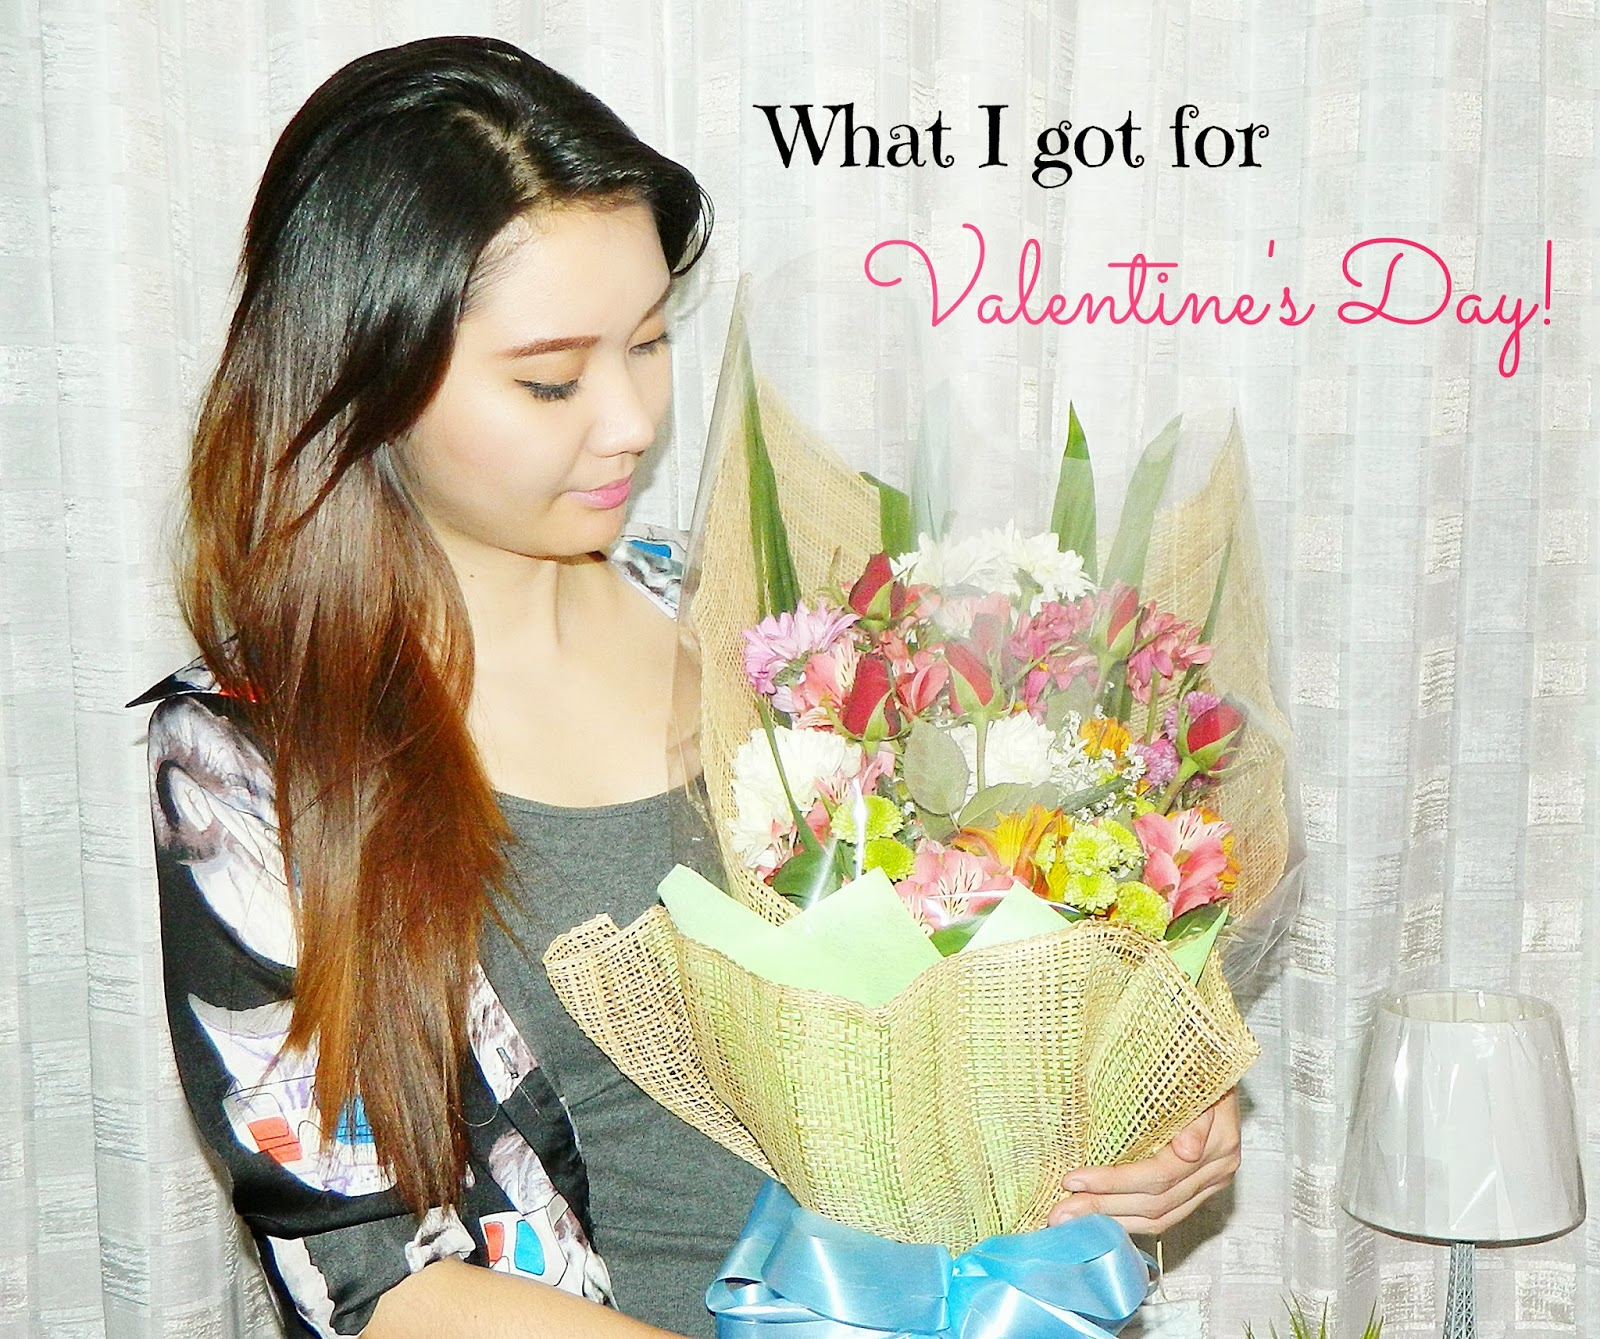 flowers what i got for valentines day chocolates roses bouquet sweet gift cake sweets review diary experience